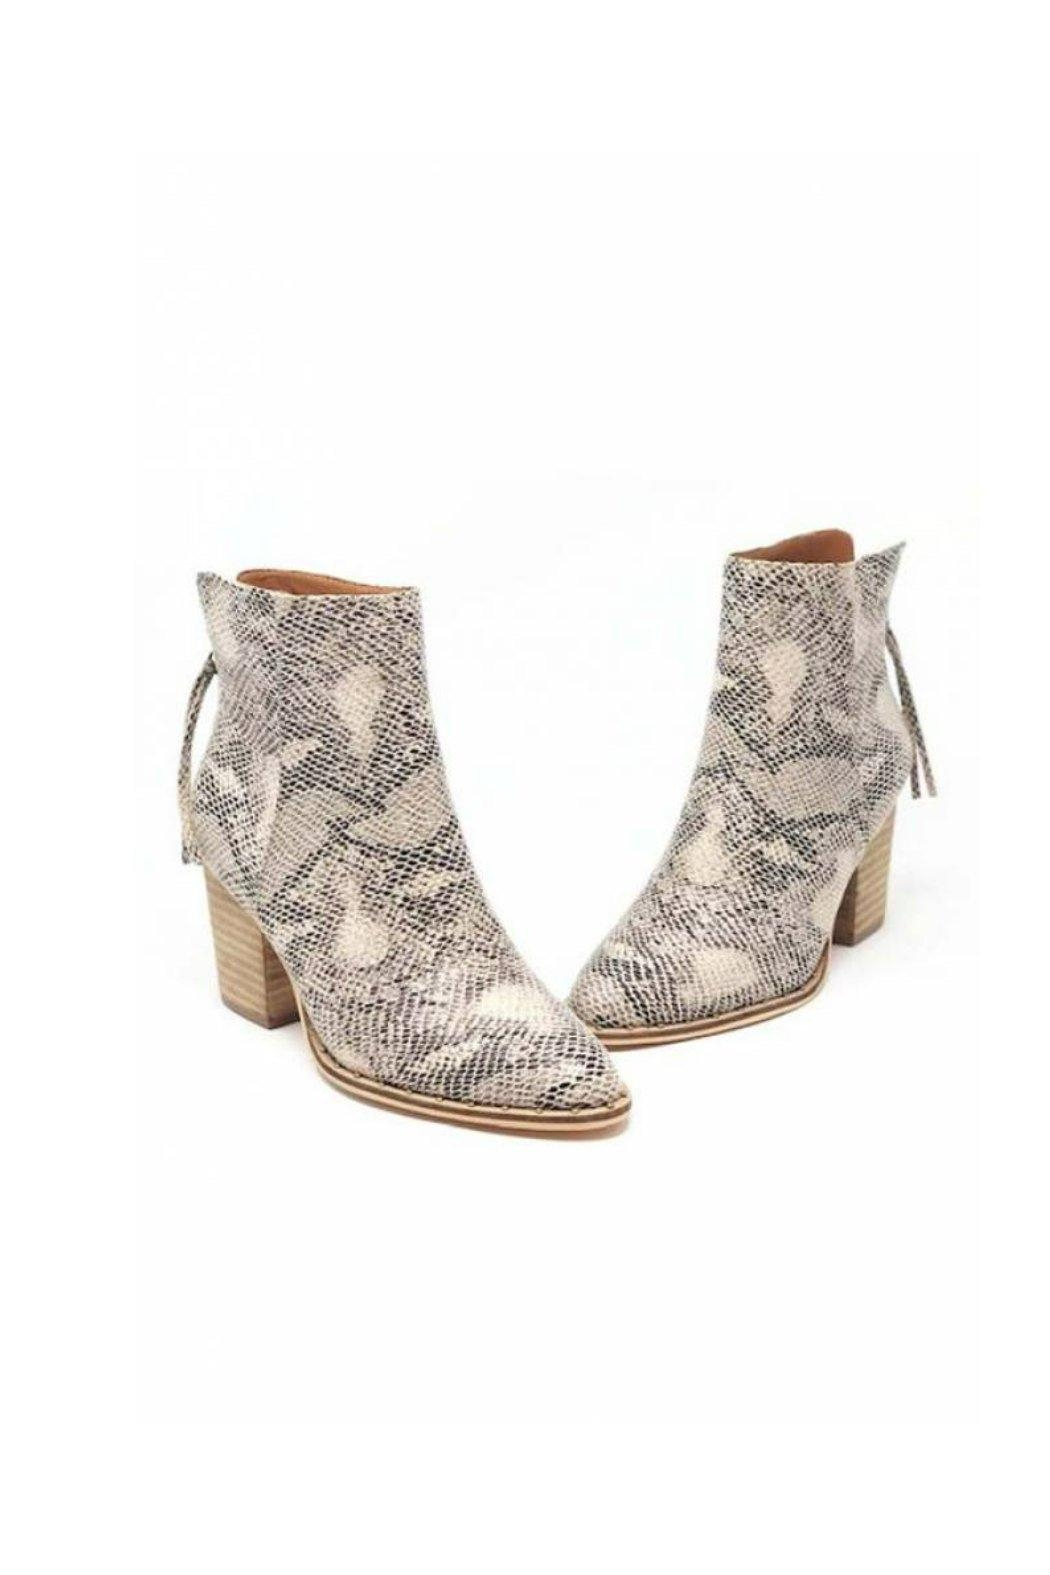 O Limit Fashion Snake Print Booties - Front Full Image